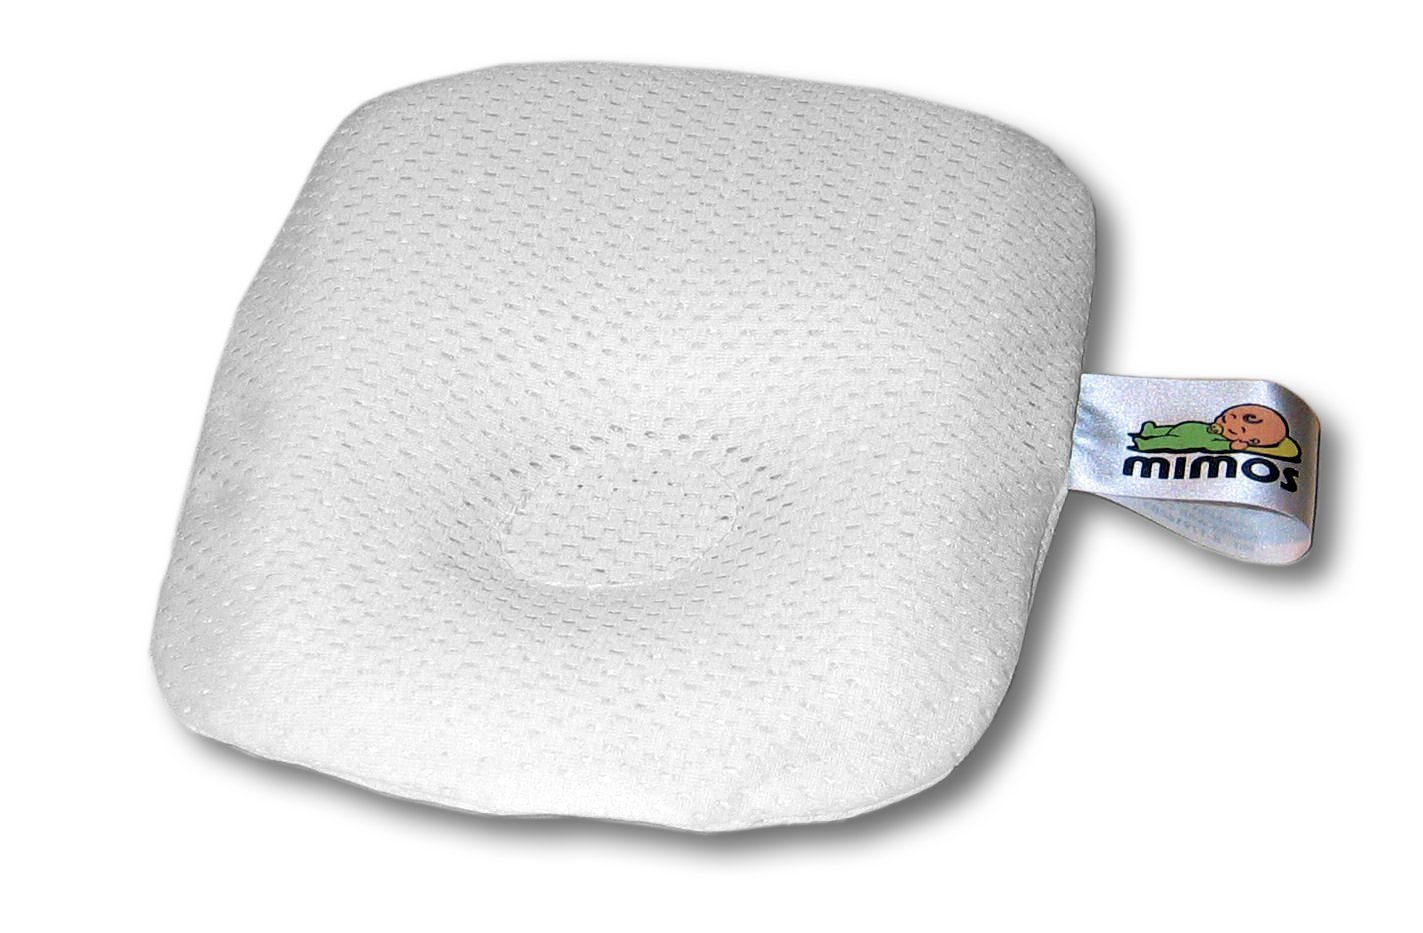 MIMOS Baby Pillow (Pram) - Air flow Safety ( TUV certification) - Size P (Head Circumference 36 - 46 cm) by MIMOS